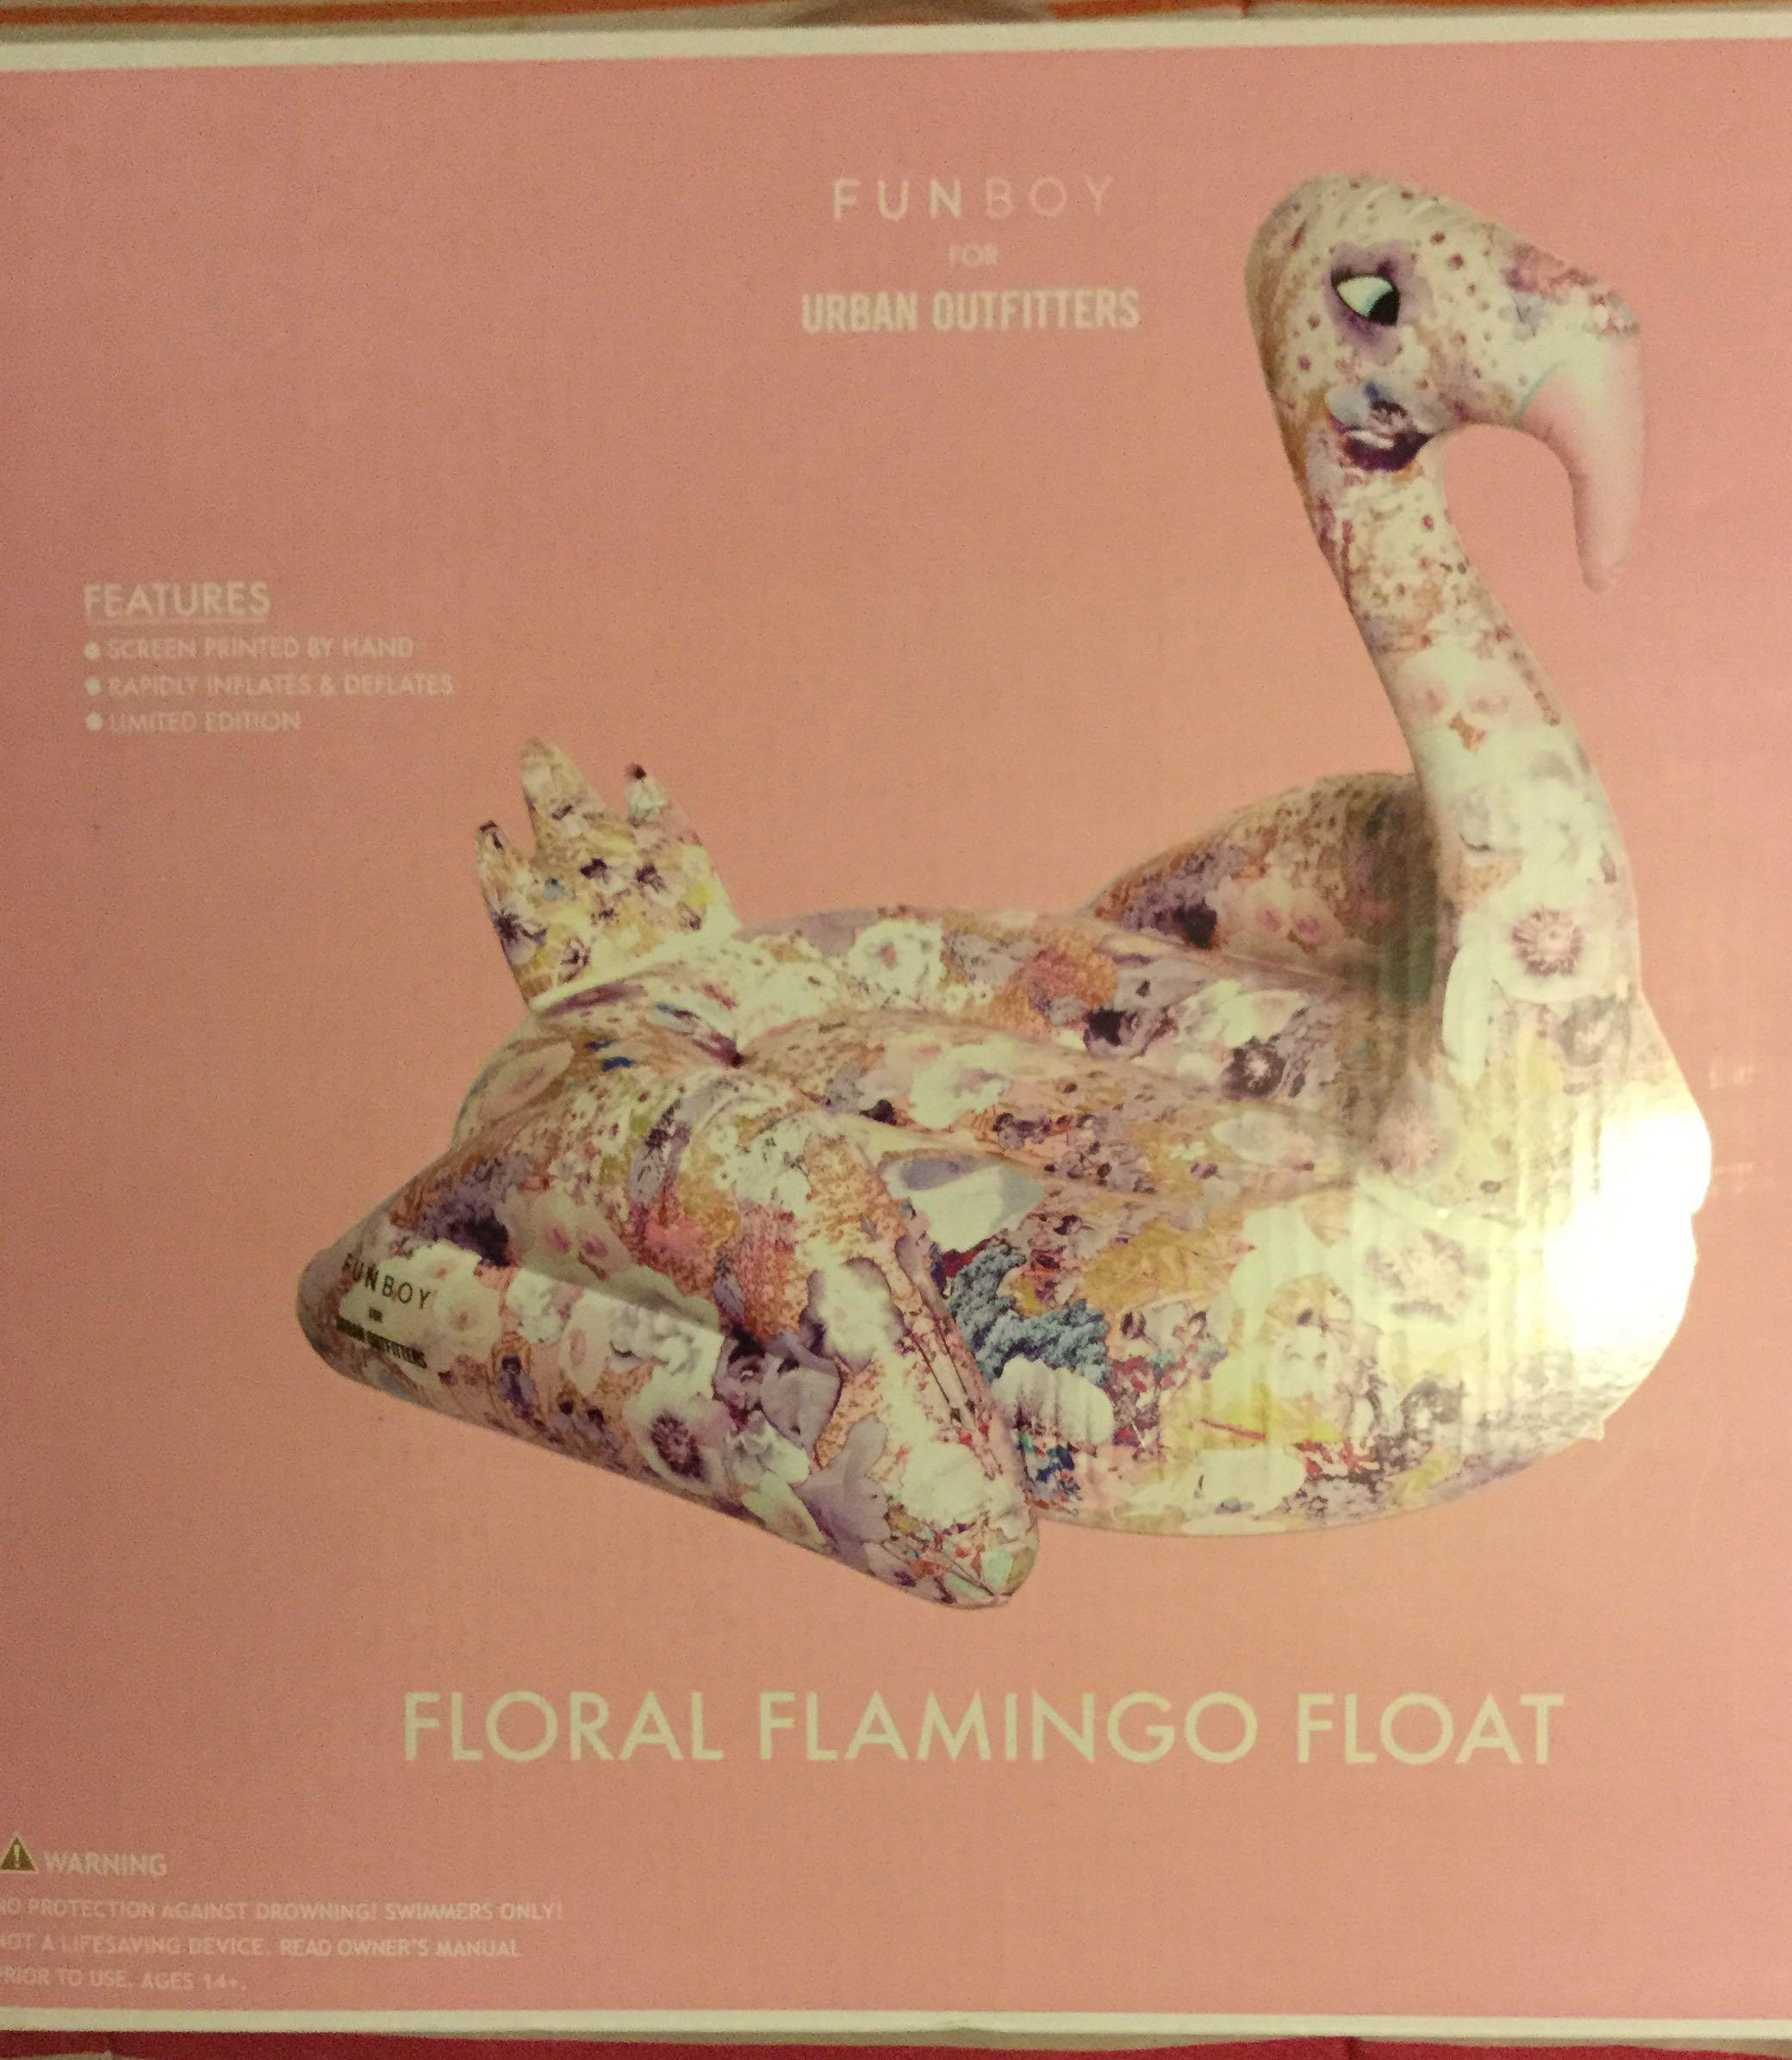 Fun Boy floral flamingo